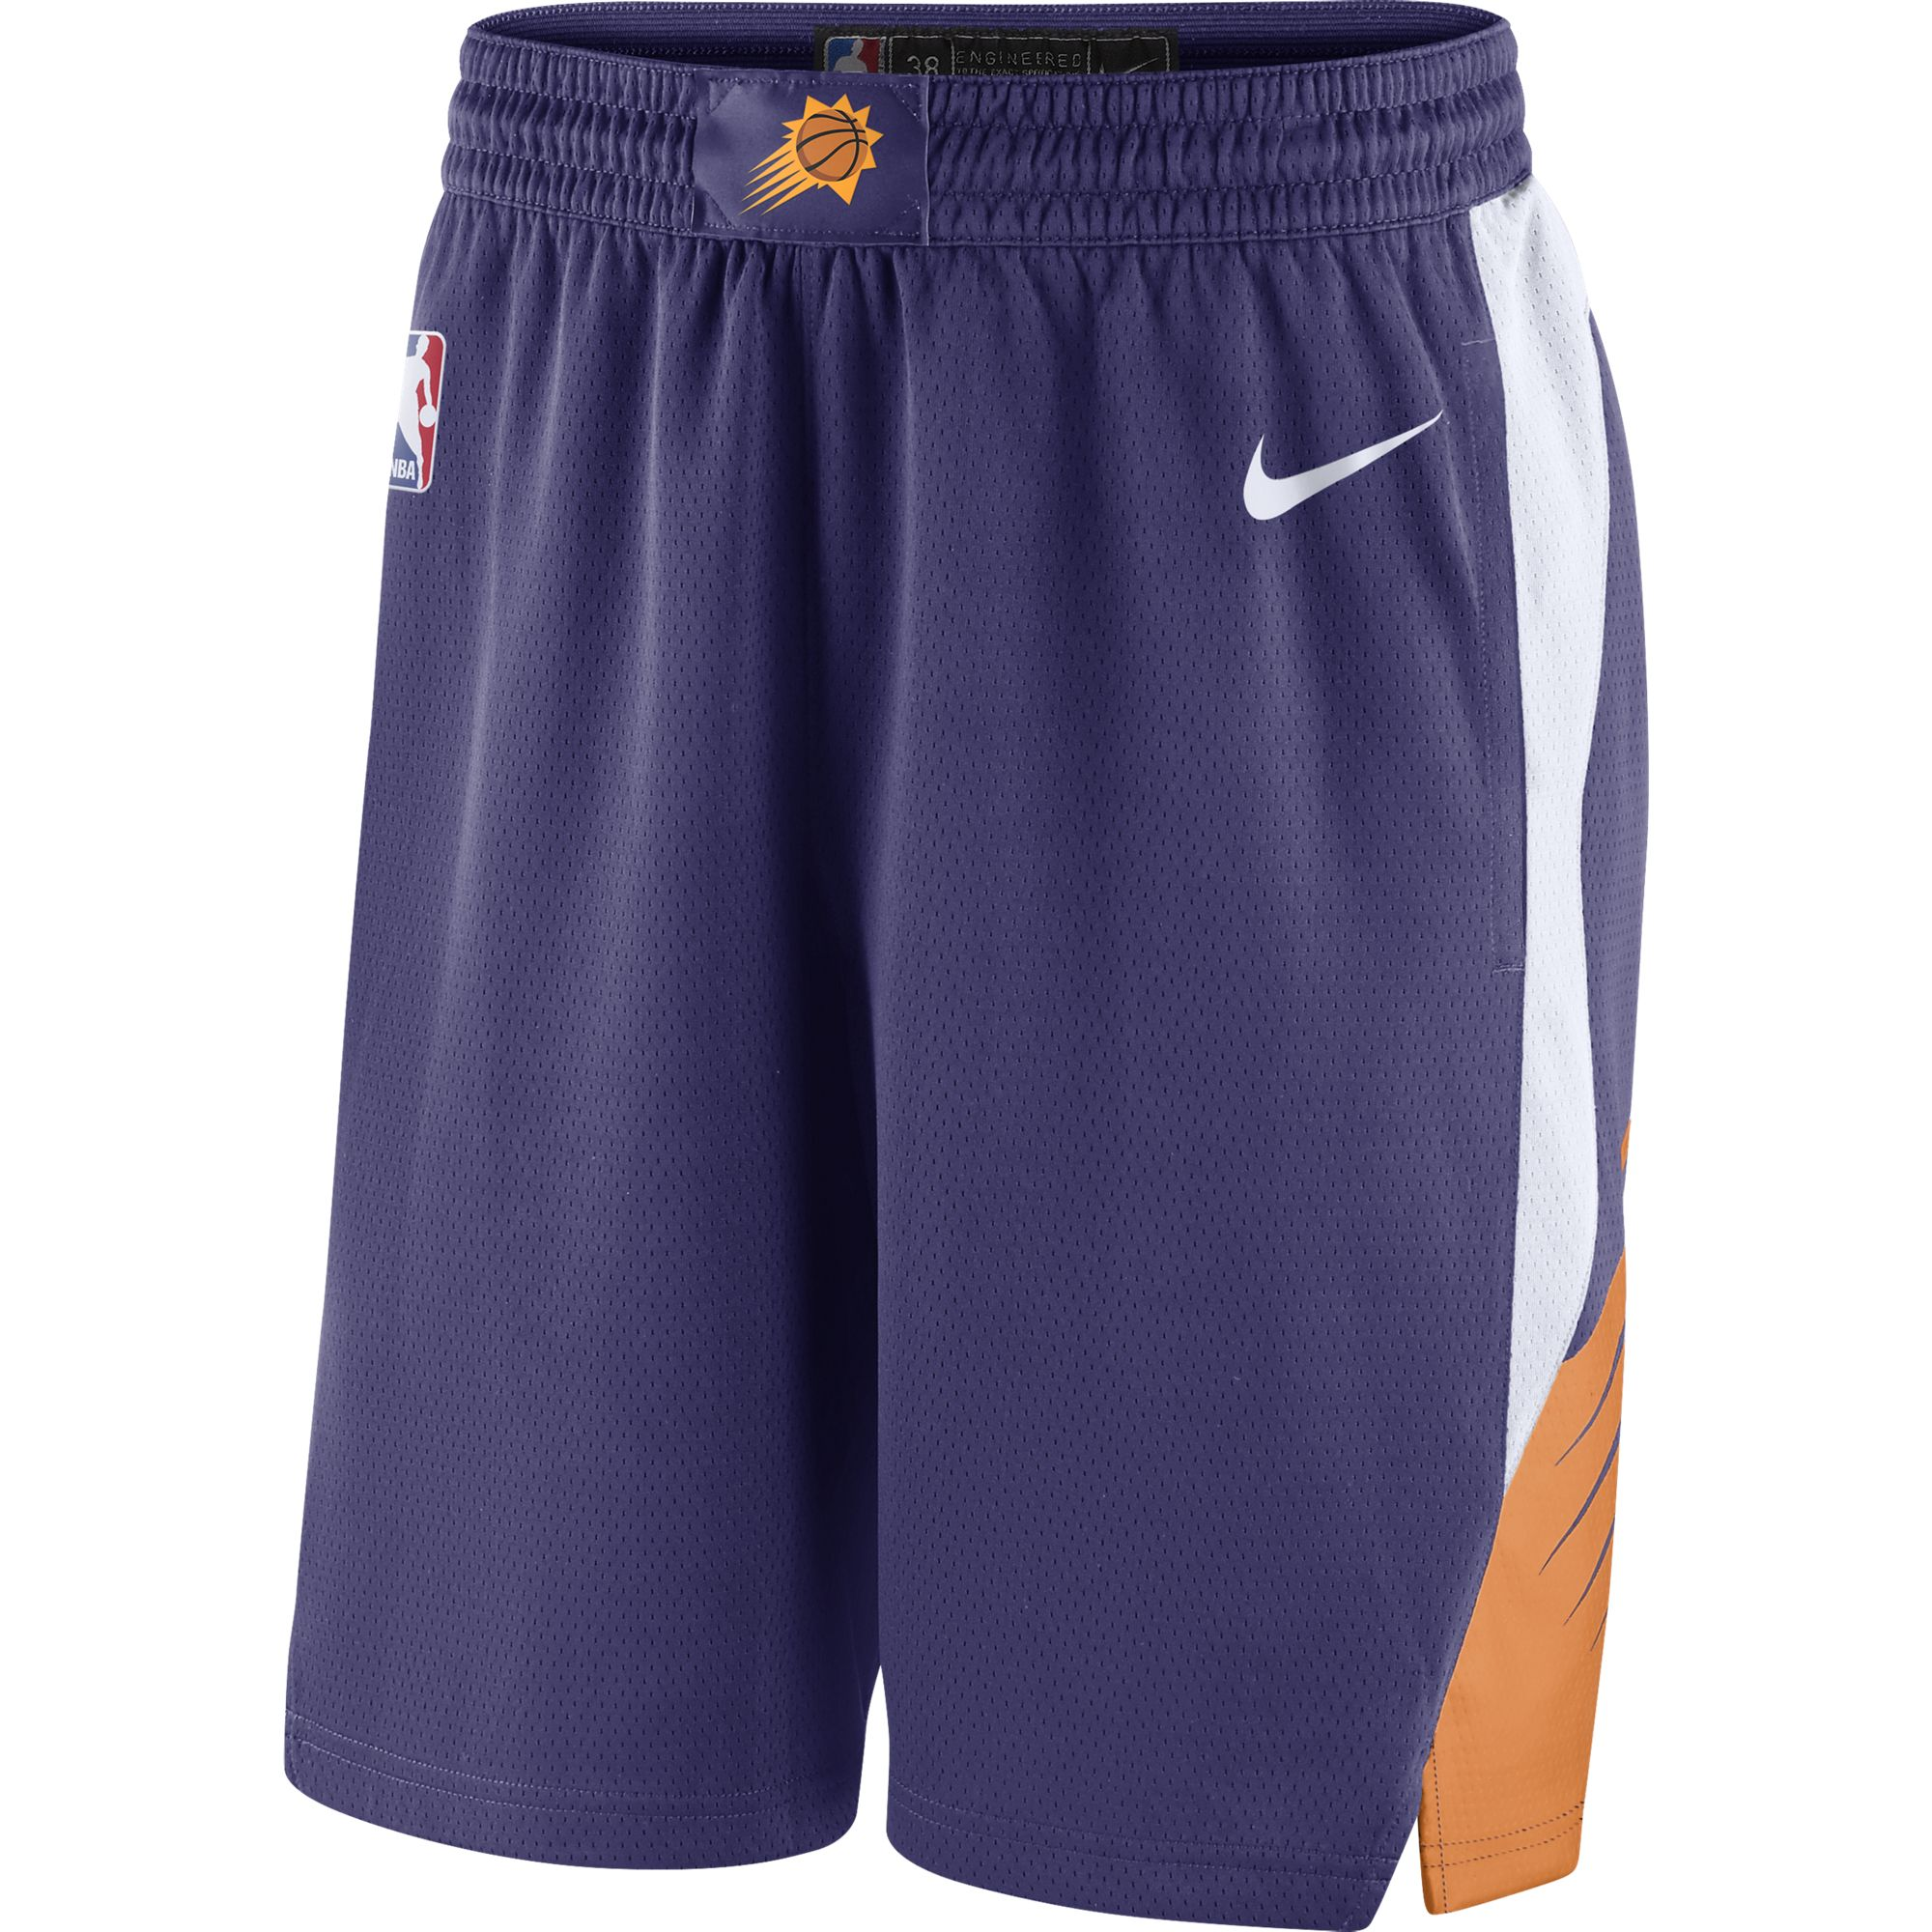 Phoenix Suns Nike 2018/19 Icon Edition Swingman Shorts - Purple